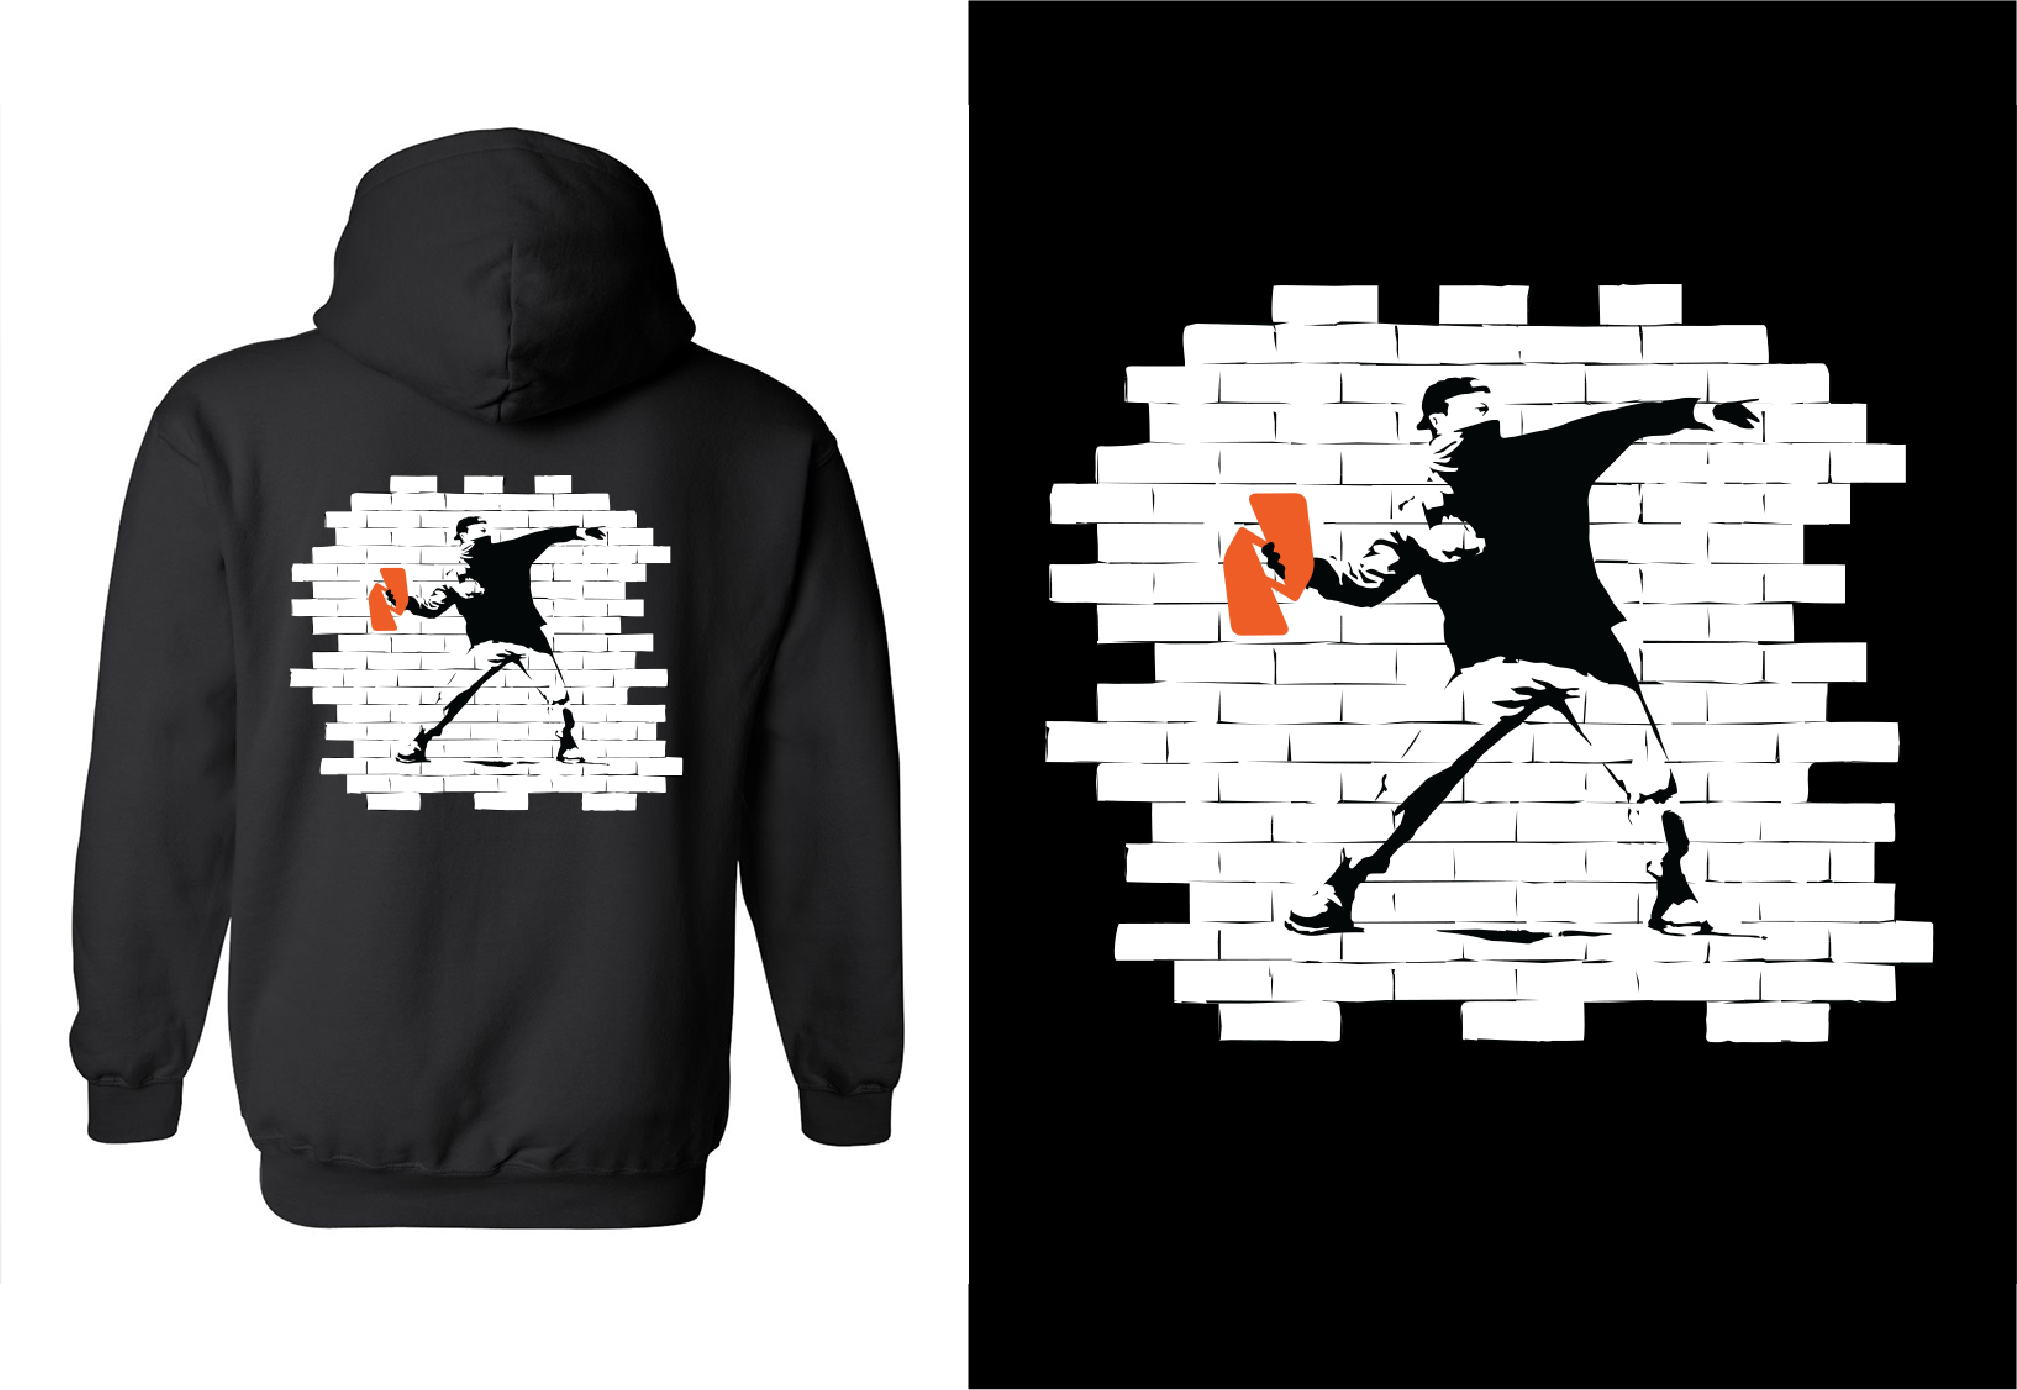 hoodie design-thumbnail copy 6.png